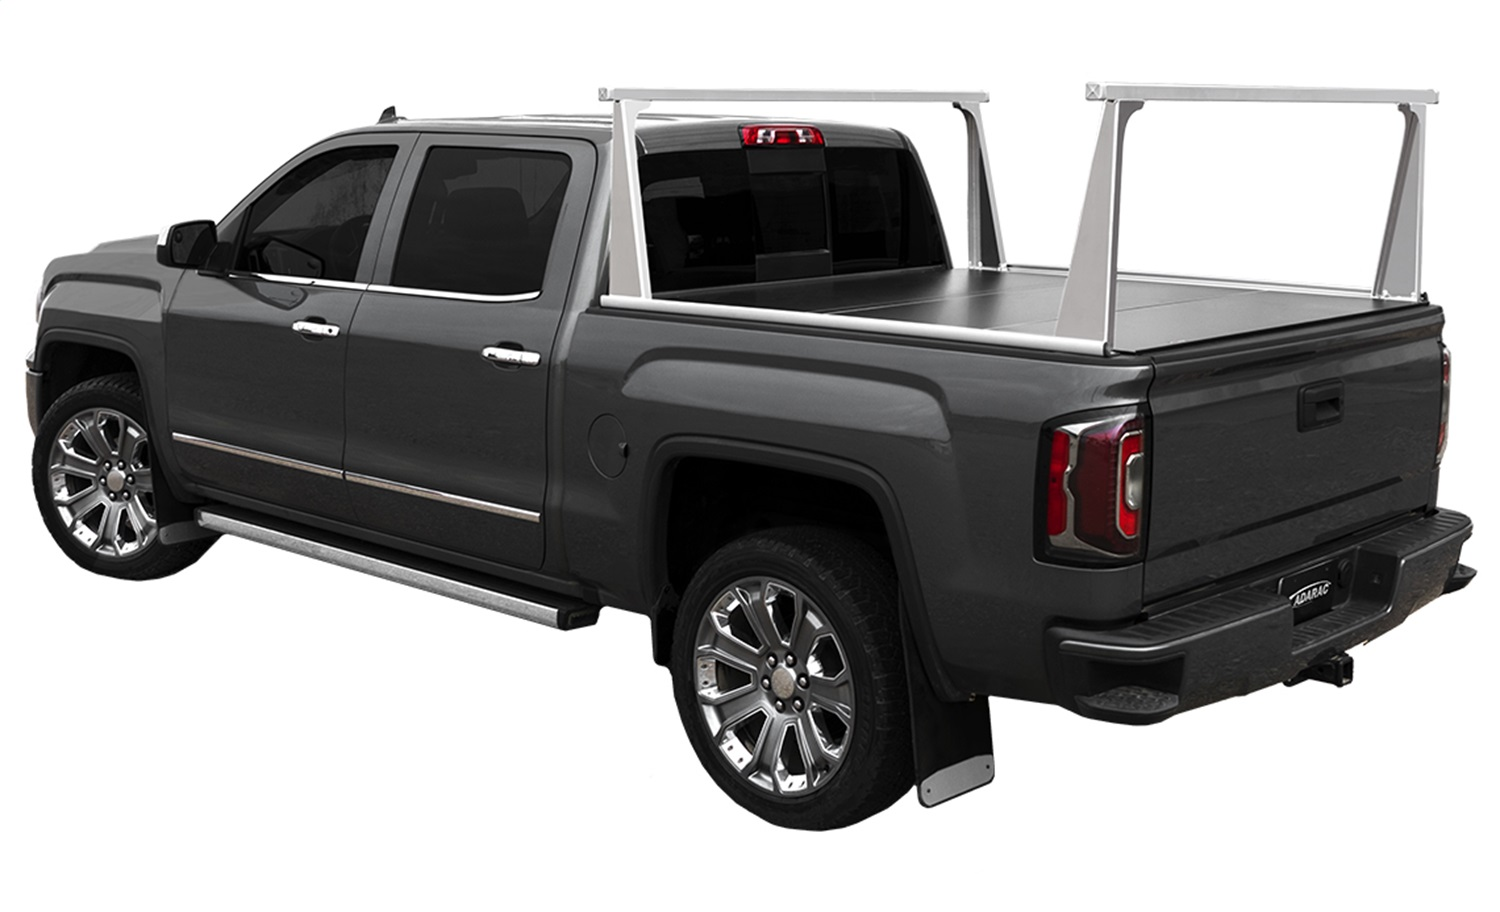 Access Cover 4000948 Aluminum Pro Series Truck Bed Rack System